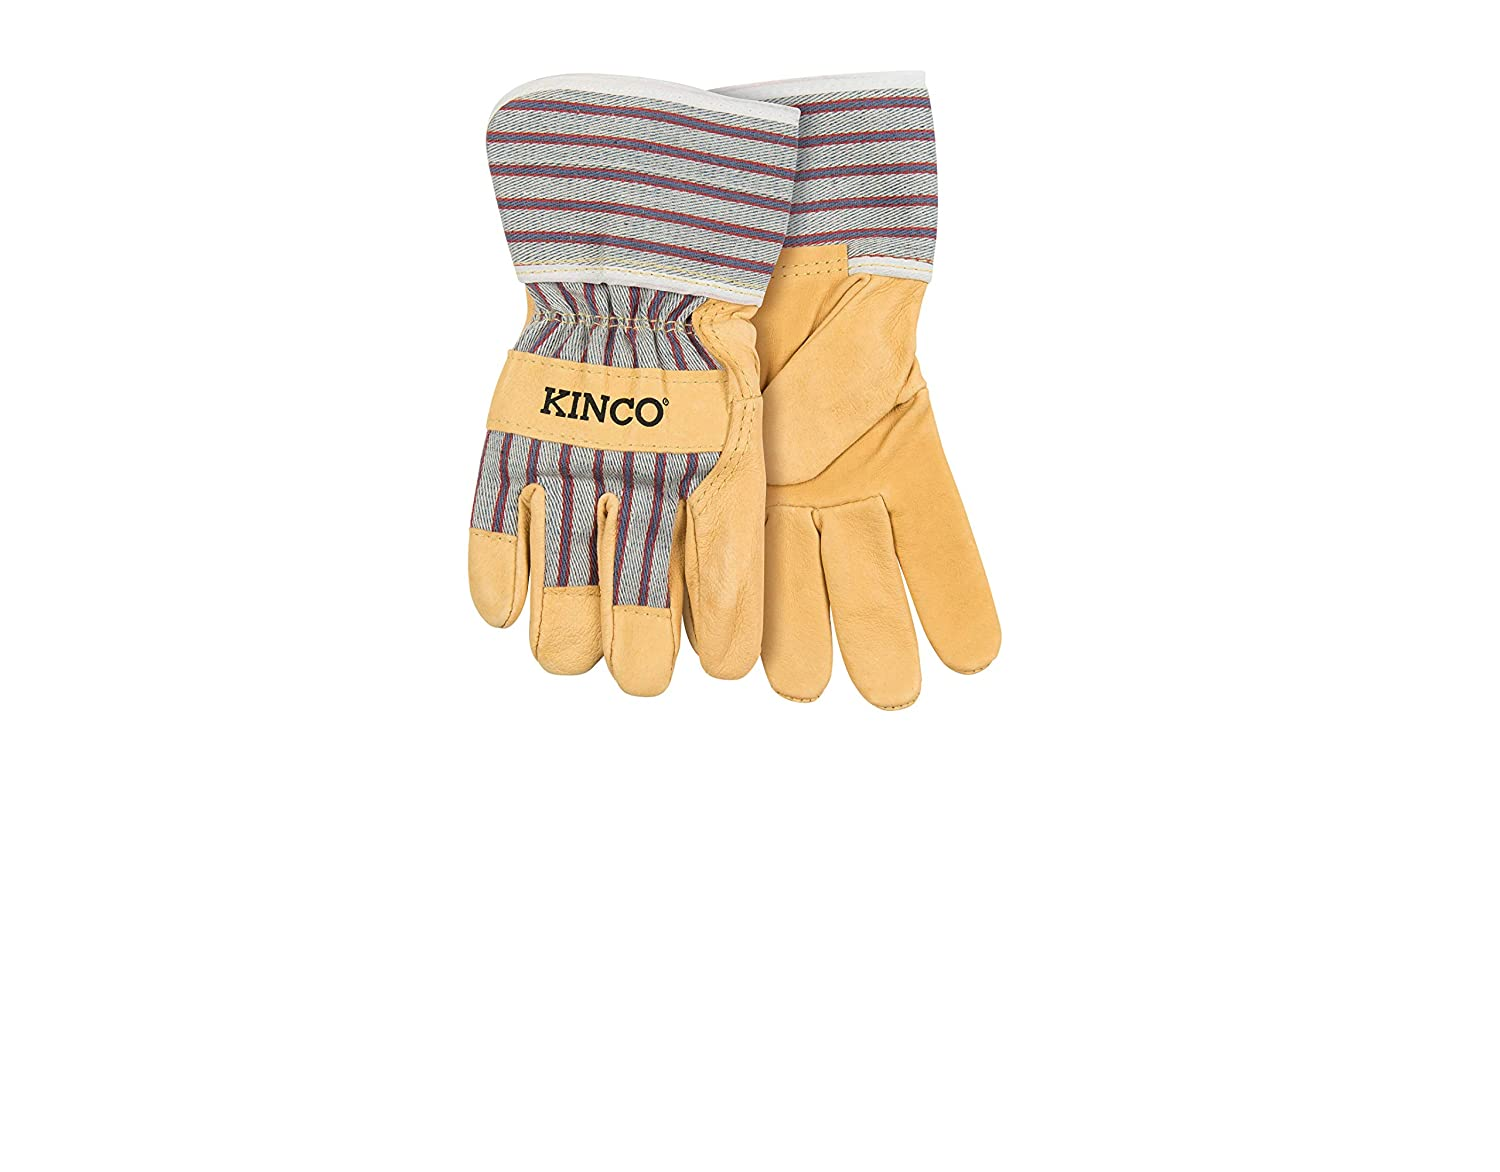 Kinco 1917 Youth Soft Durable Pigskin Leather with Safety Cuff and Wing Thumb Gloves 1 Pair